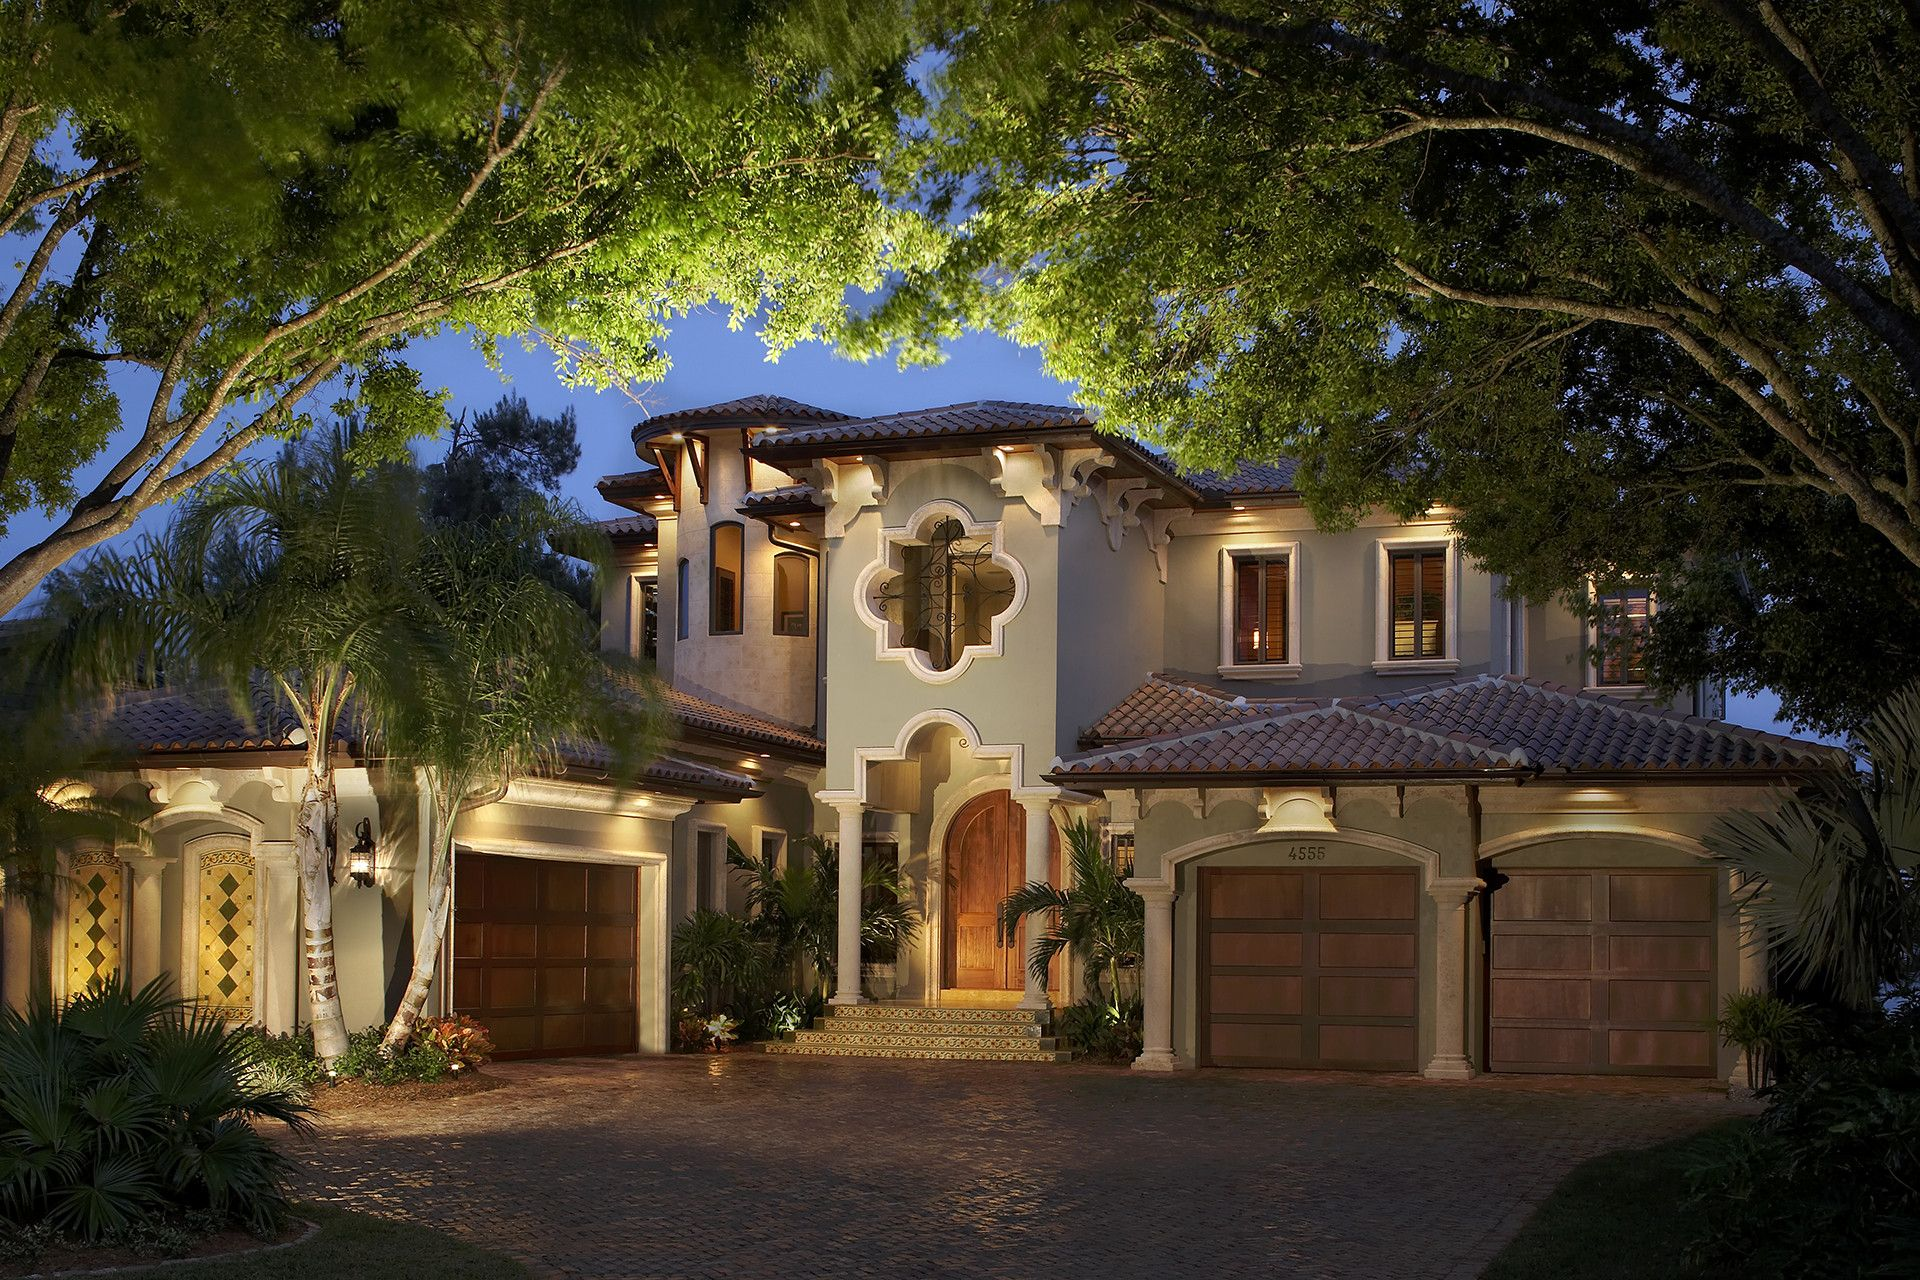 Mediterranean Style Home By Design Styles Architecture   Front Elevation  With Decorative Trim And Brackets